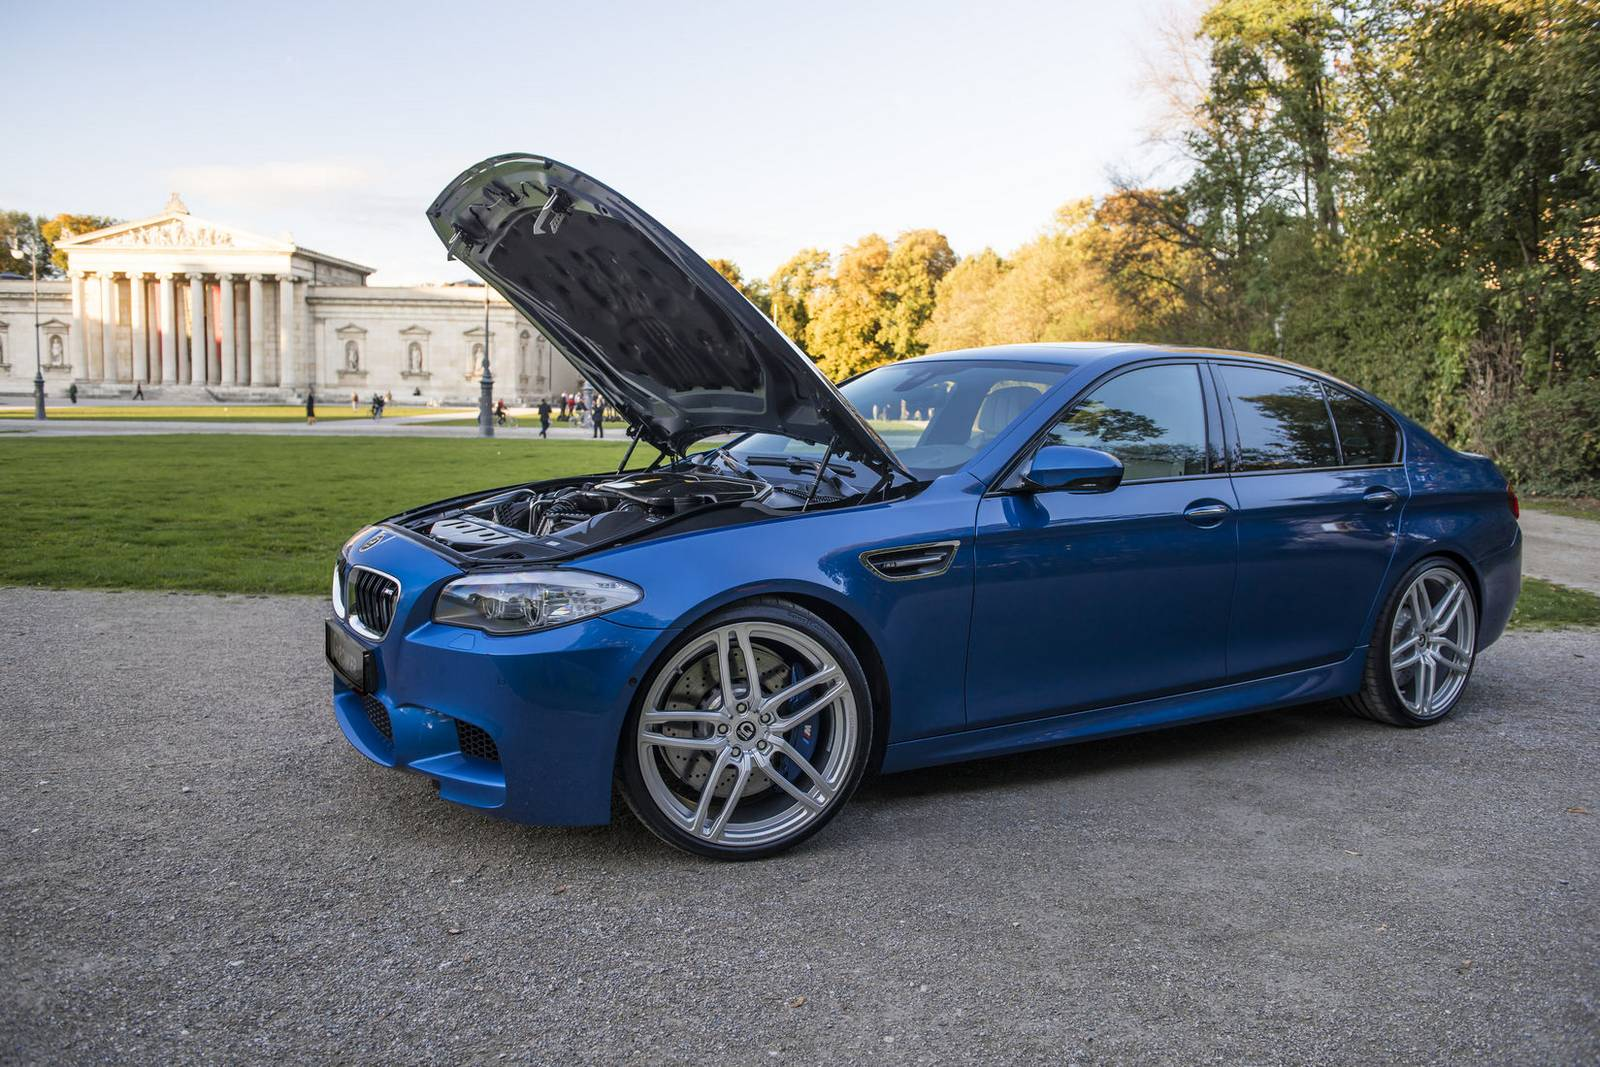 official g power bmw f10 m5 with 740hp gtspirit. Black Bedroom Furniture Sets. Home Design Ideas